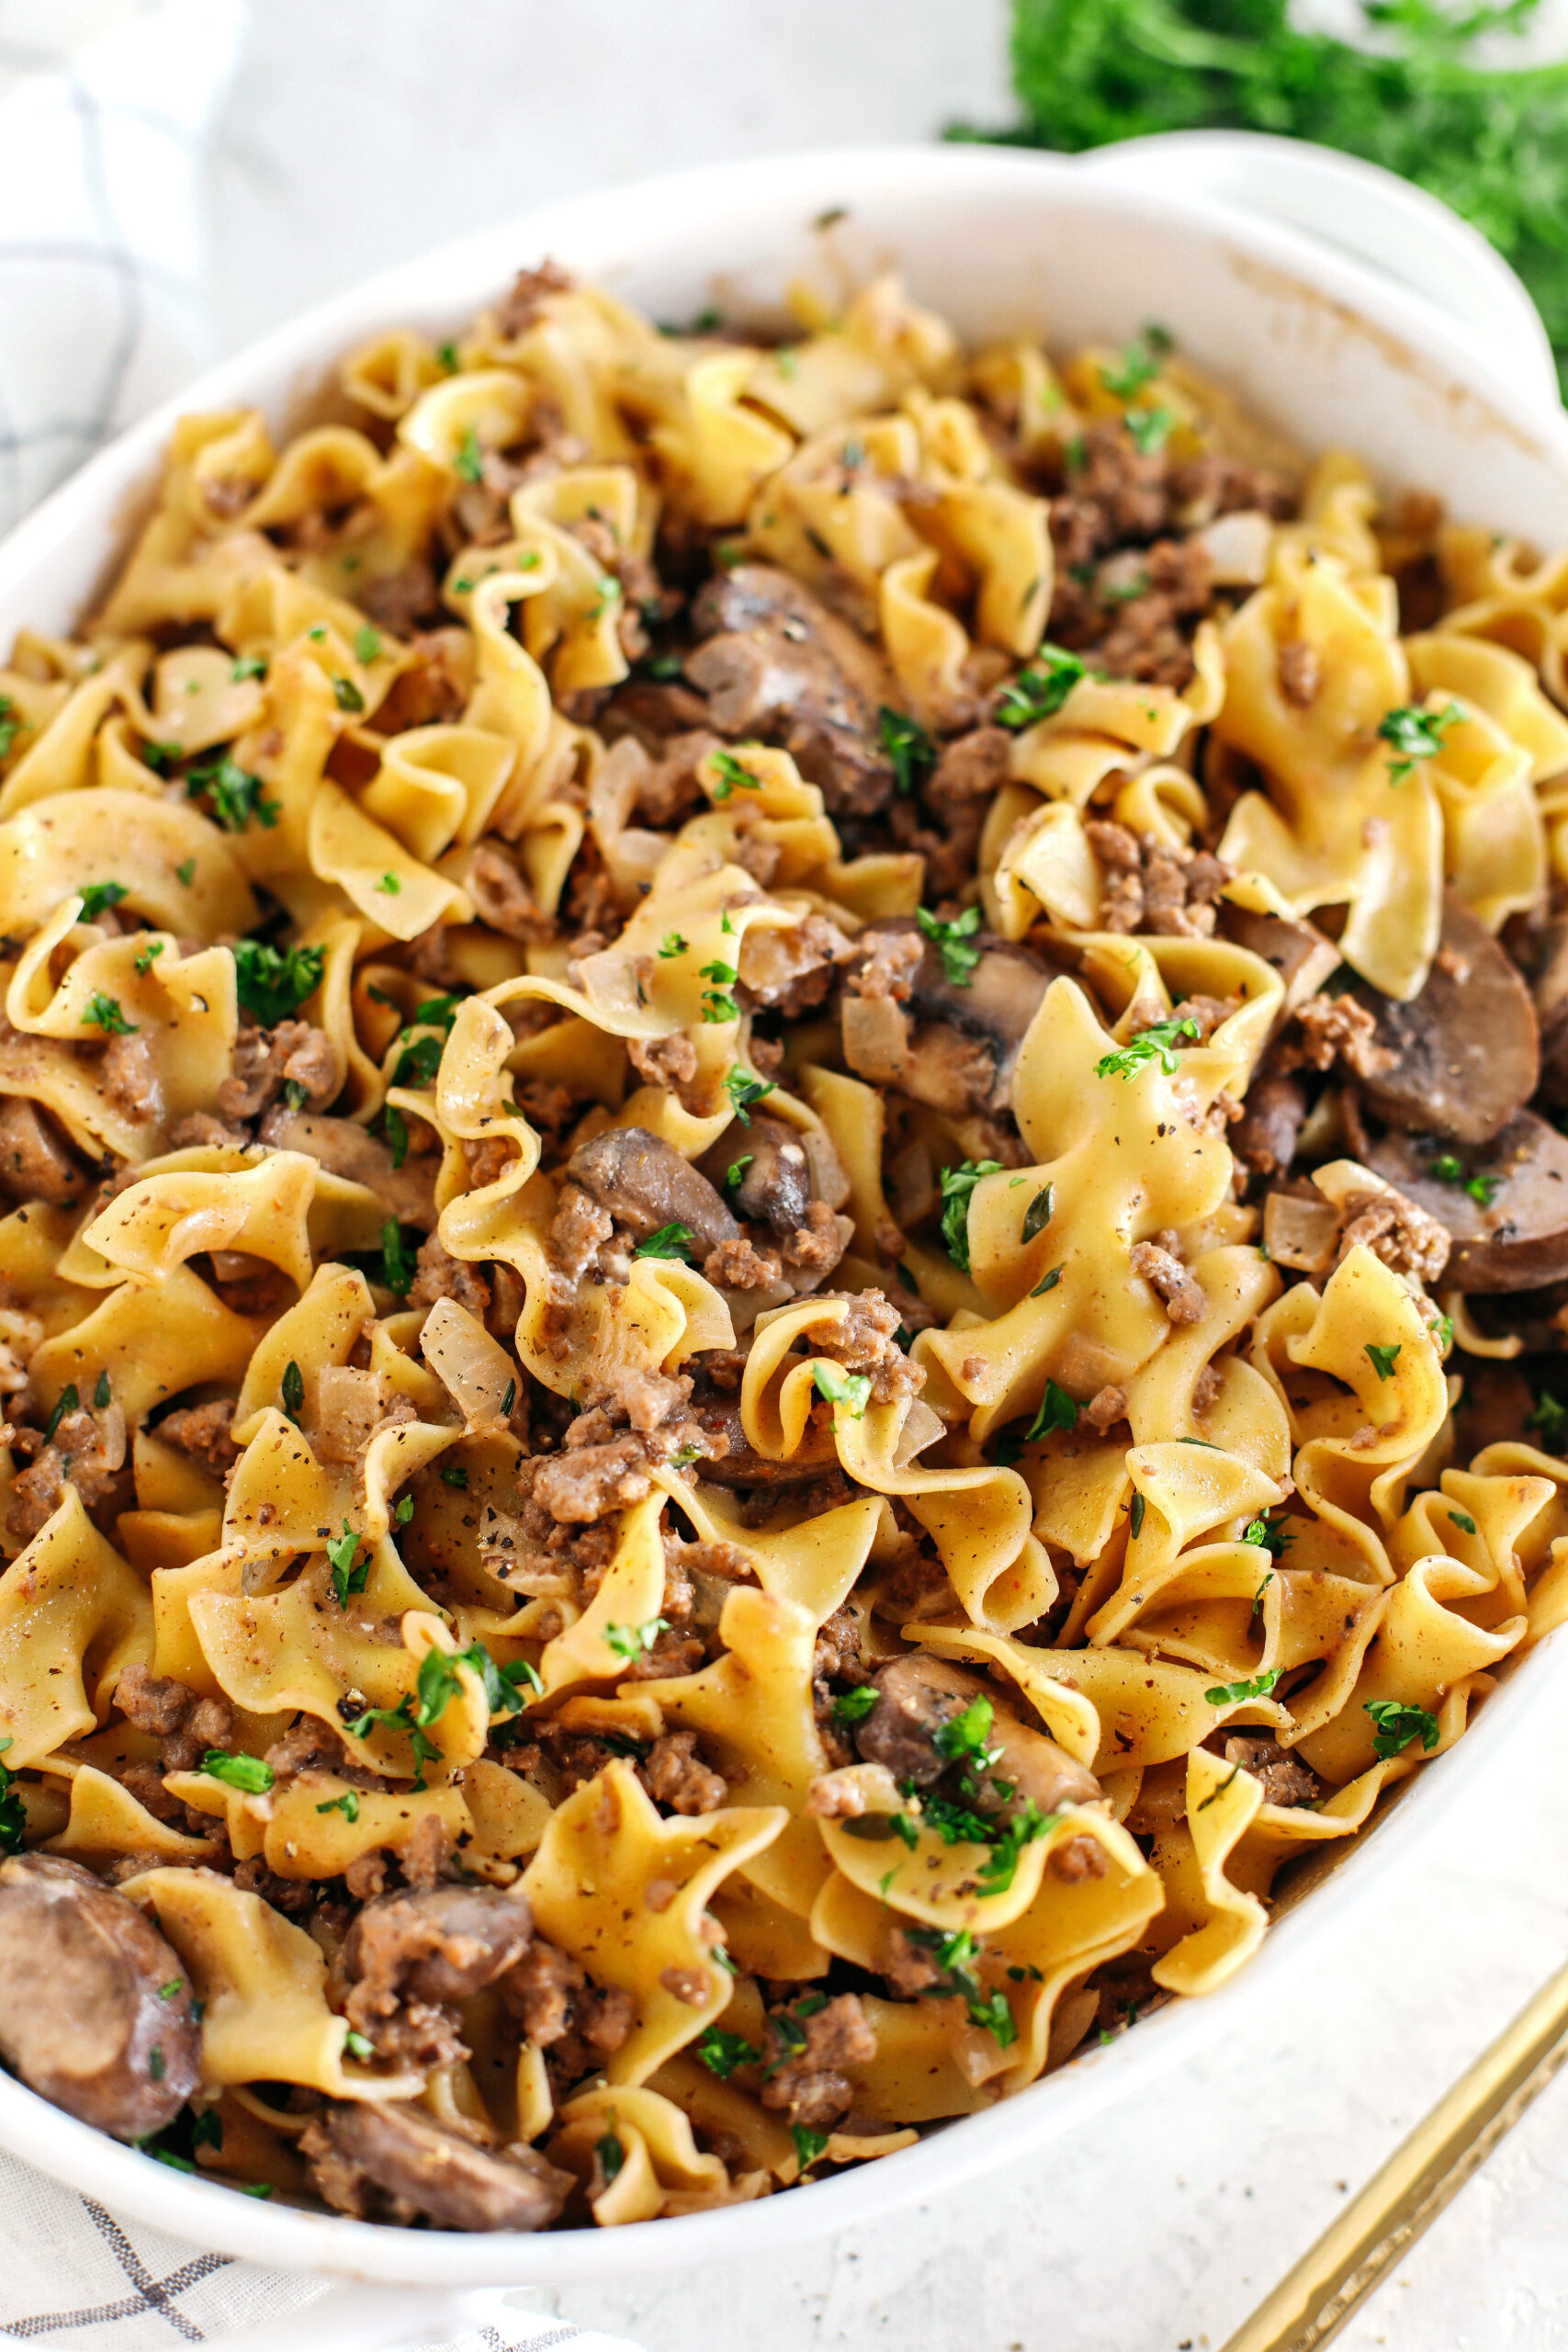 This Easy Beef Stroganoff Casserole is the ultimate family-friendly comfort food! The perfect weeknight meal made with egg noodles and smothered in the most delicious creamy mushroom sauce in just 30 minutes!